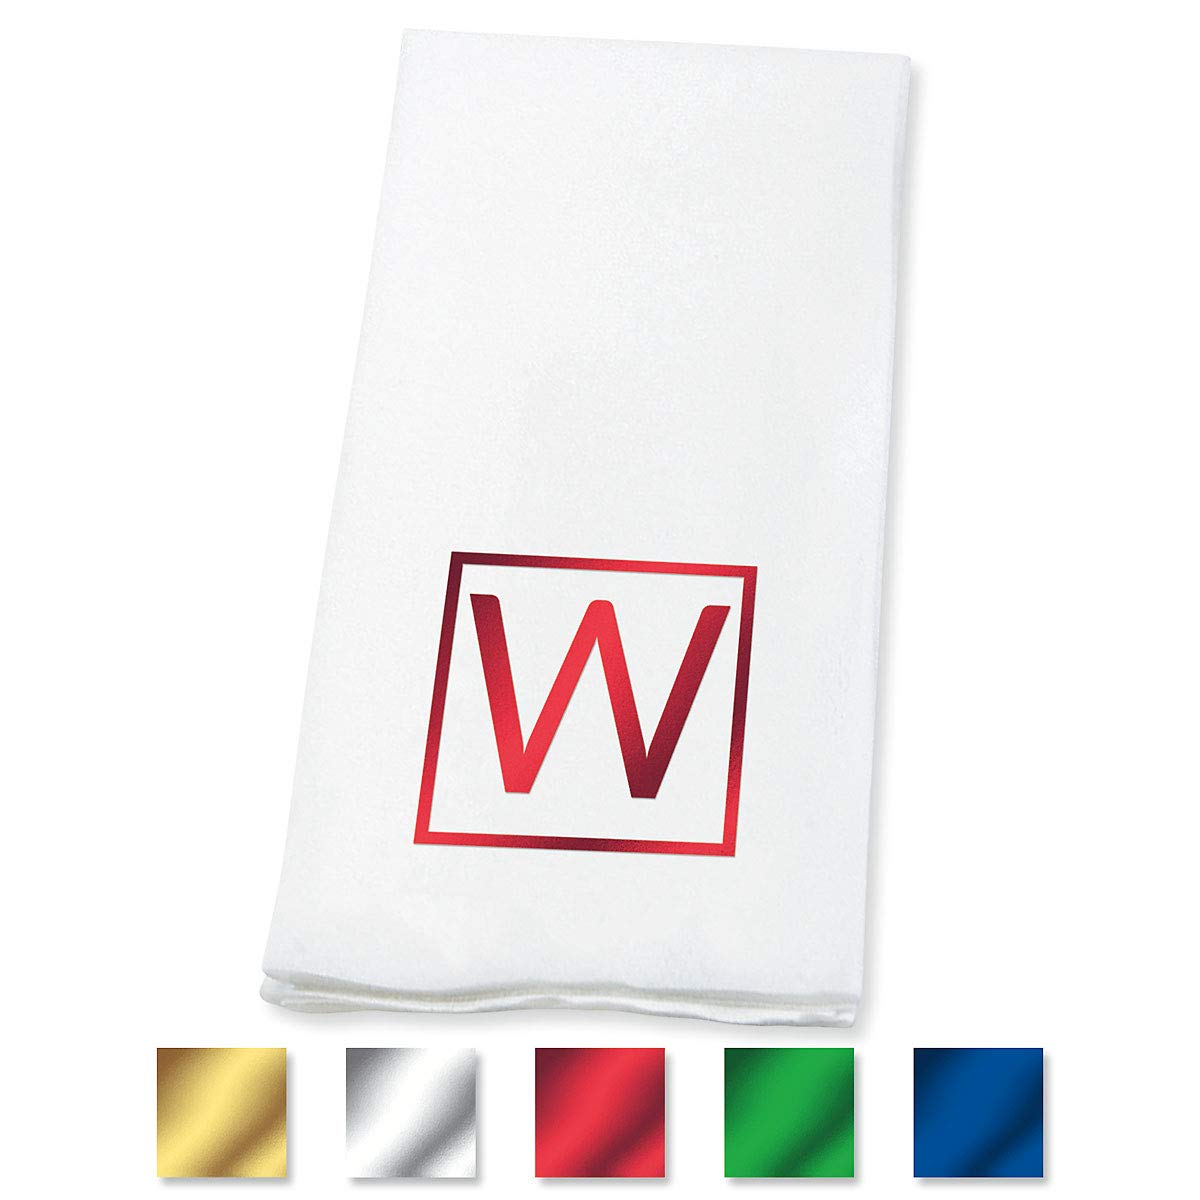 Lillian Vernon Square Personalized Monogram Guest Hand Towels (Set of 100)- 50% Cotton 50% Paper Blend, 13'' by 17'' Open and 4 1/2'' by 8 1/2'' Closed, Choose from 5 Colors, Weddings, Dinner Party